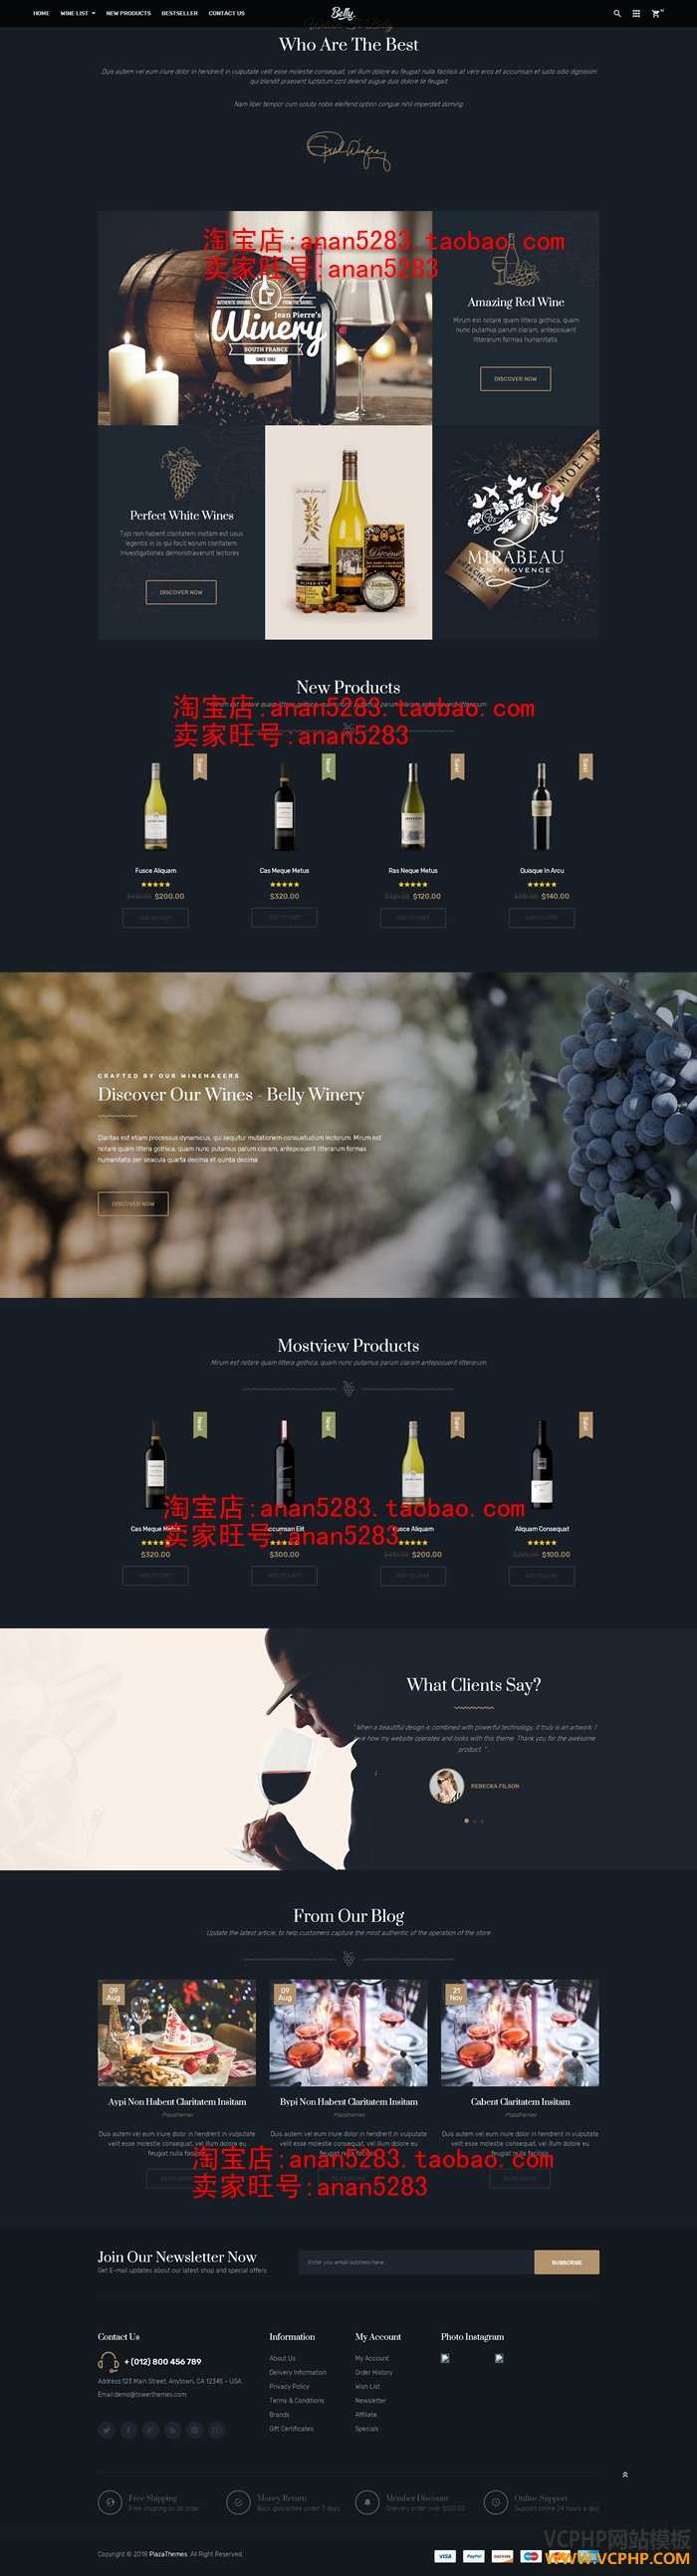 Wine Food & Drink Theme for Opencart 3.x